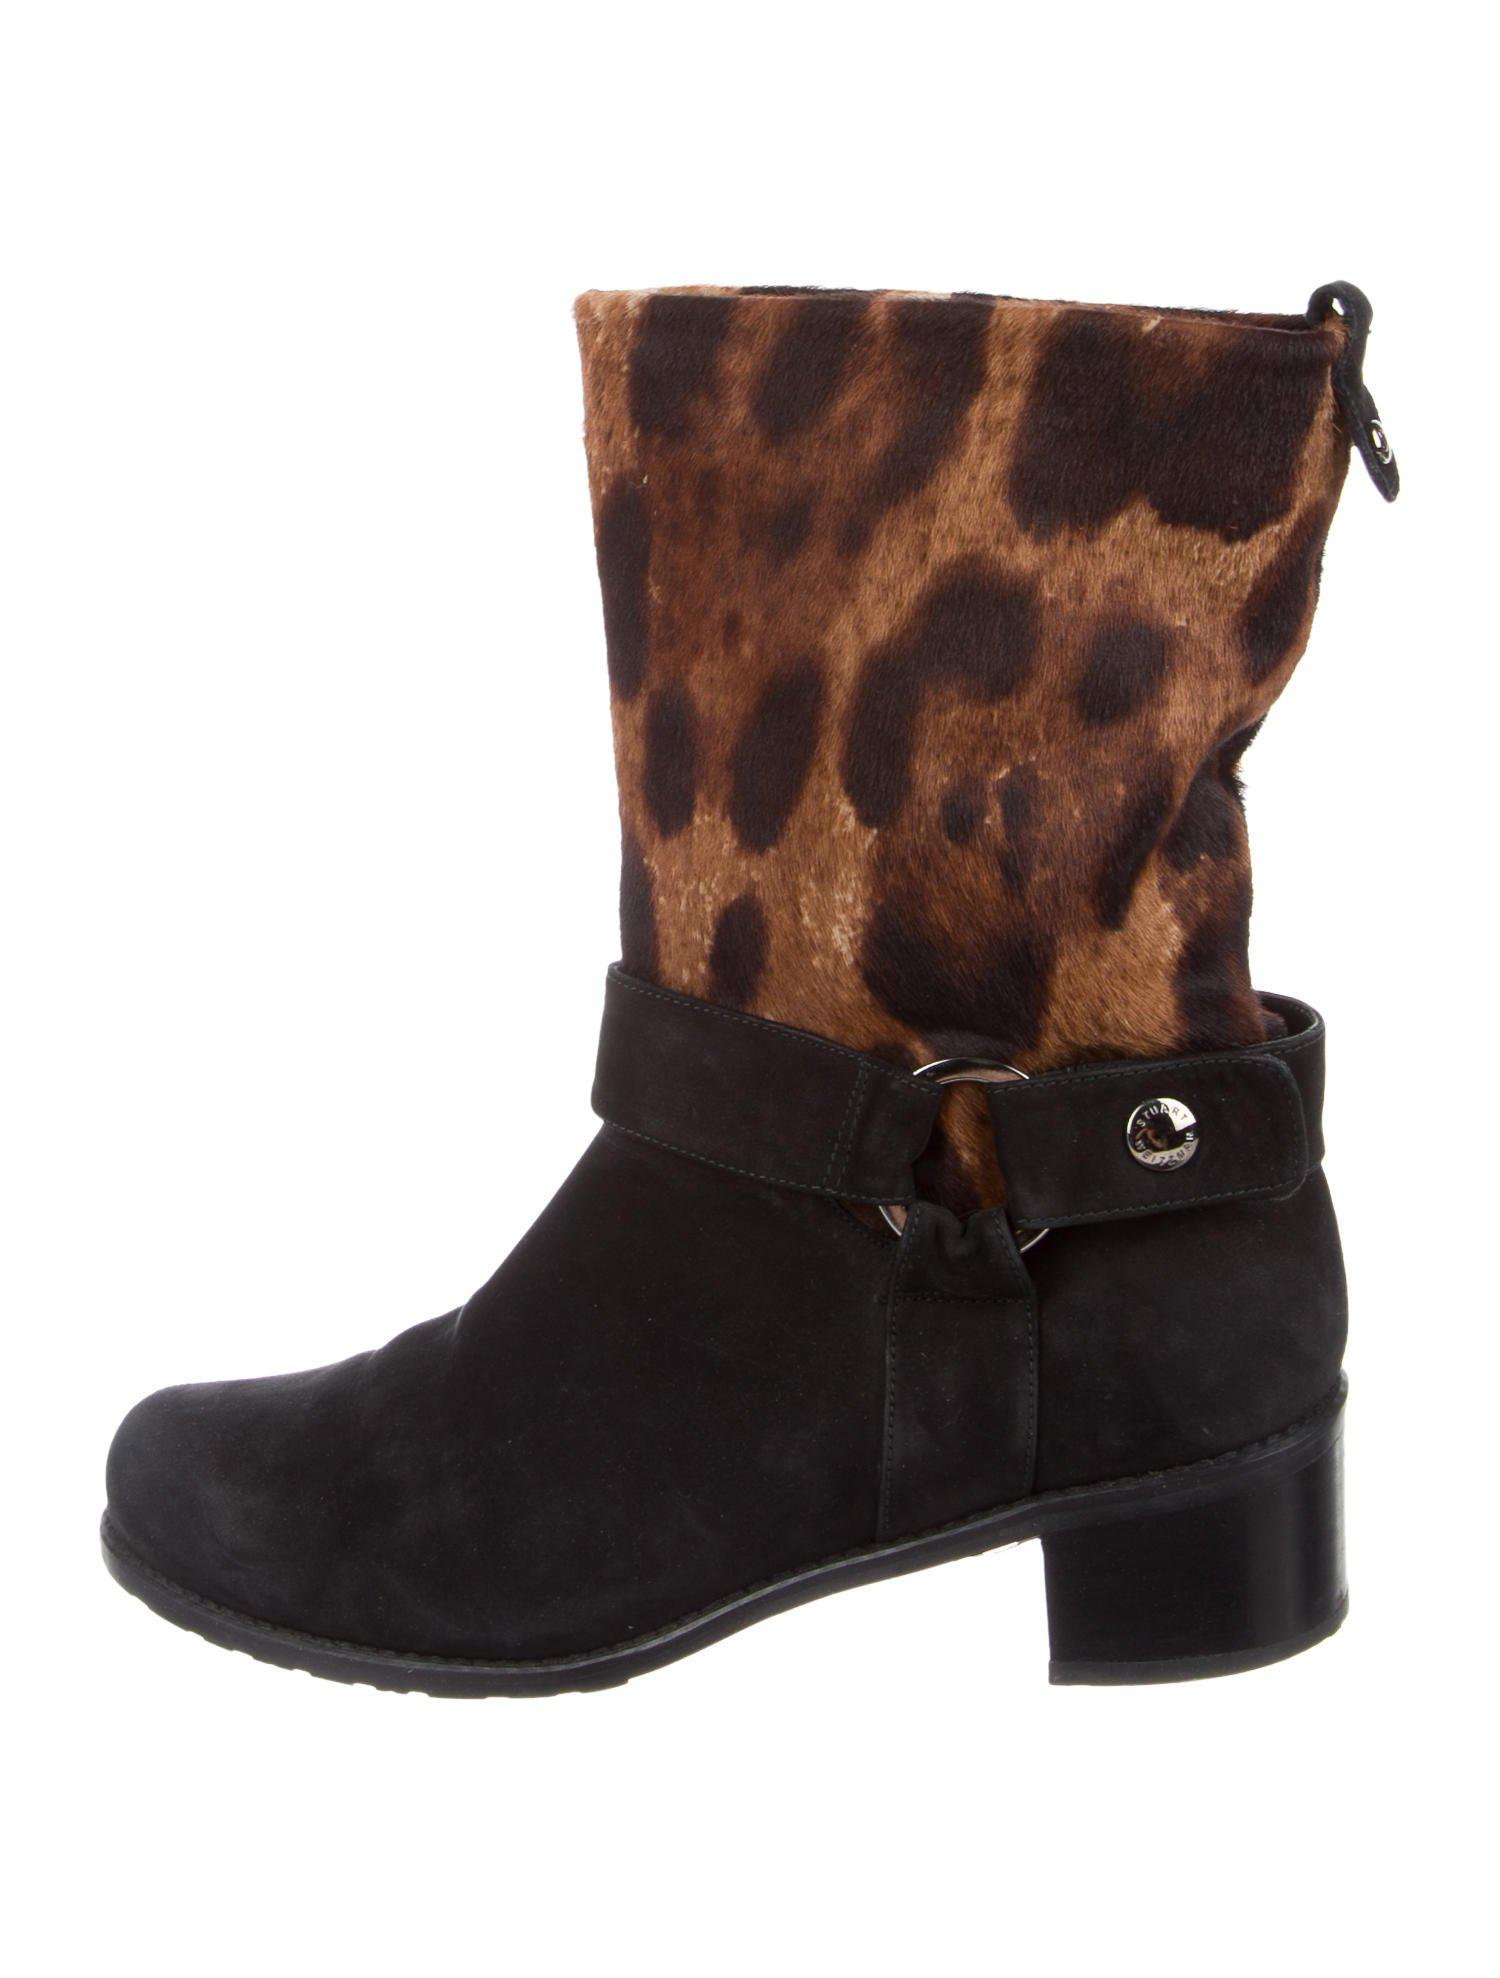 Stuart Weitzman Leather Ponyhair-Trimmed Booties finishline free shipping best seller free shipping pay with paypal 9rBhwV2d